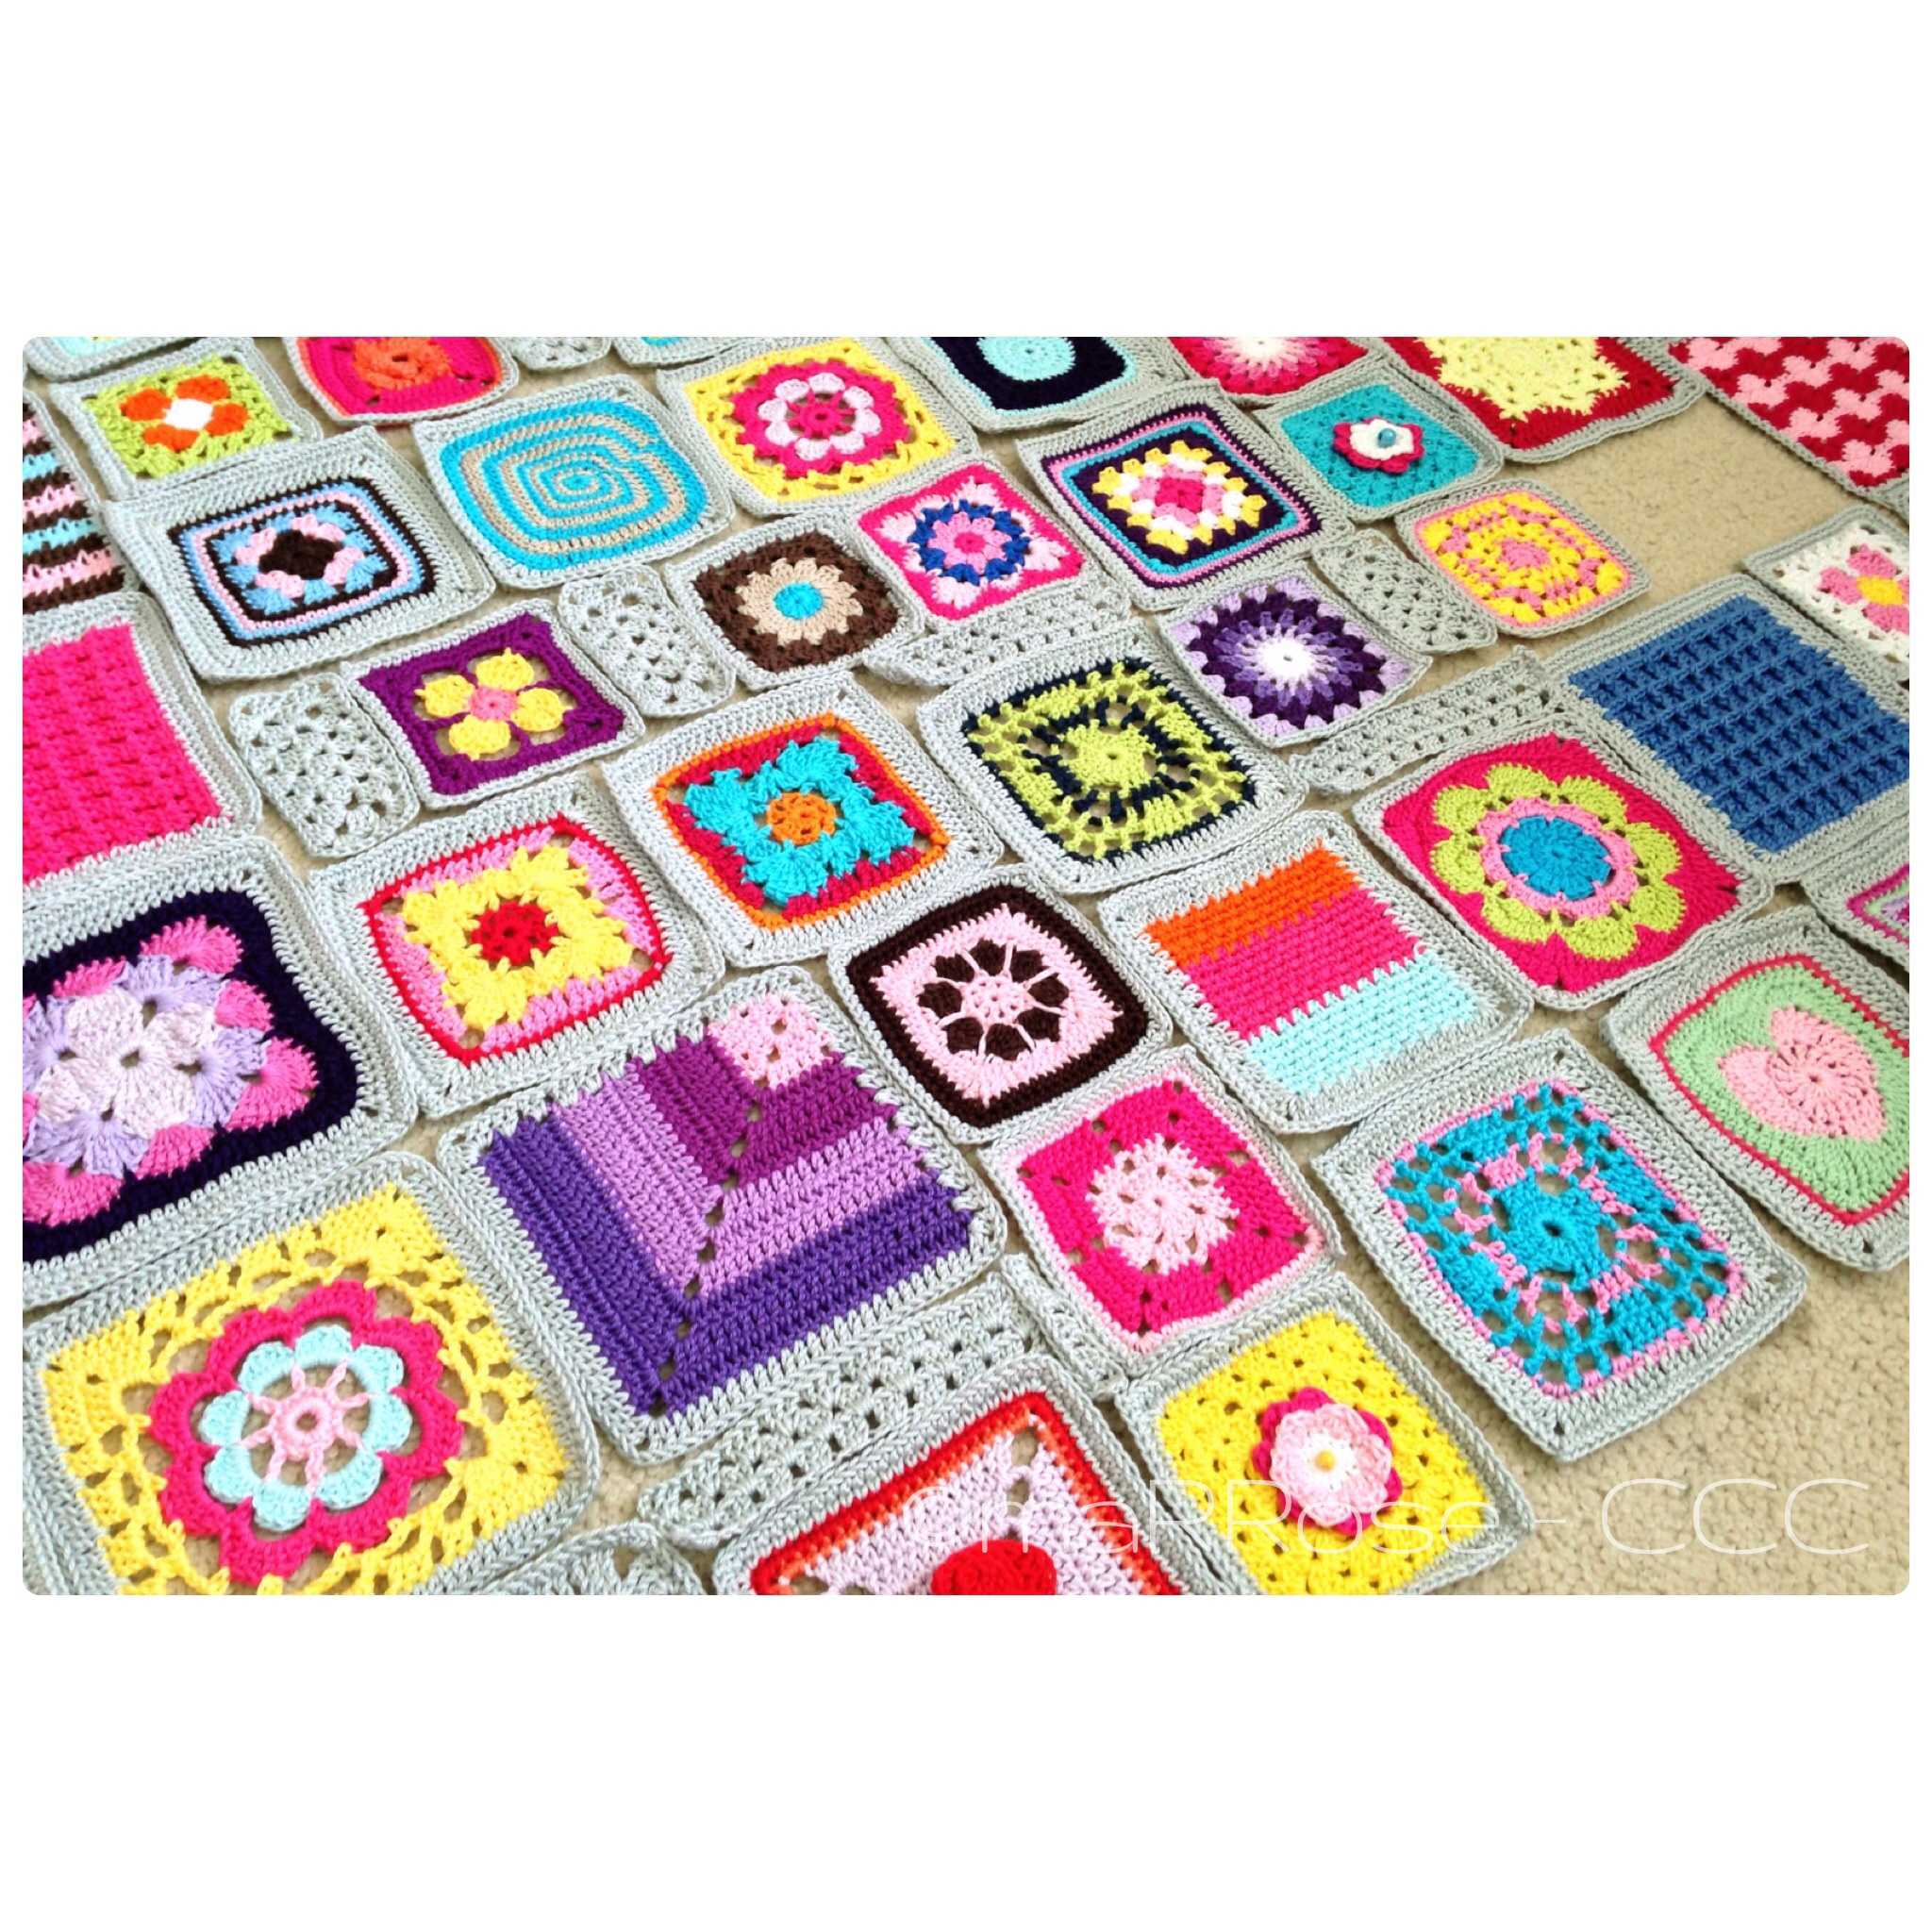 maRRose - CCC: Homely Blanket